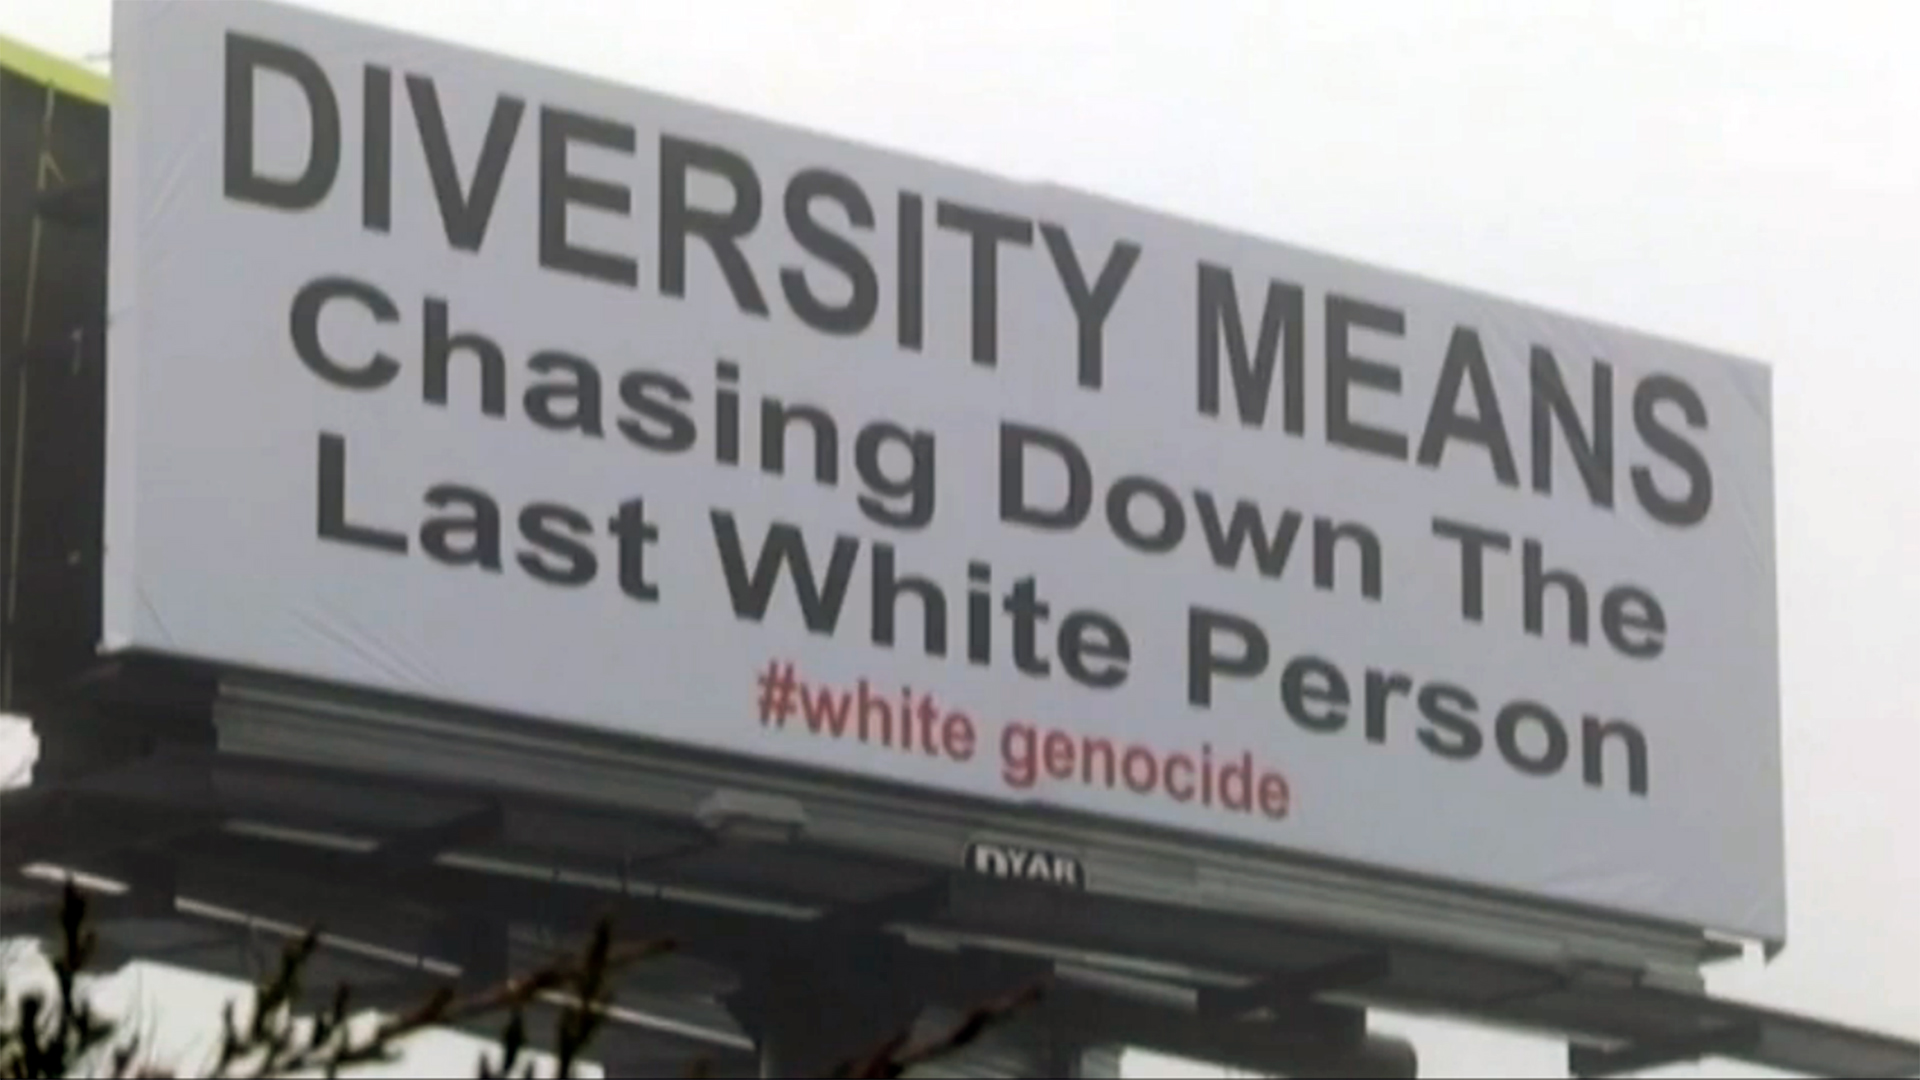 Billboard Tagged White Genocide Stirs Controversy Nbc